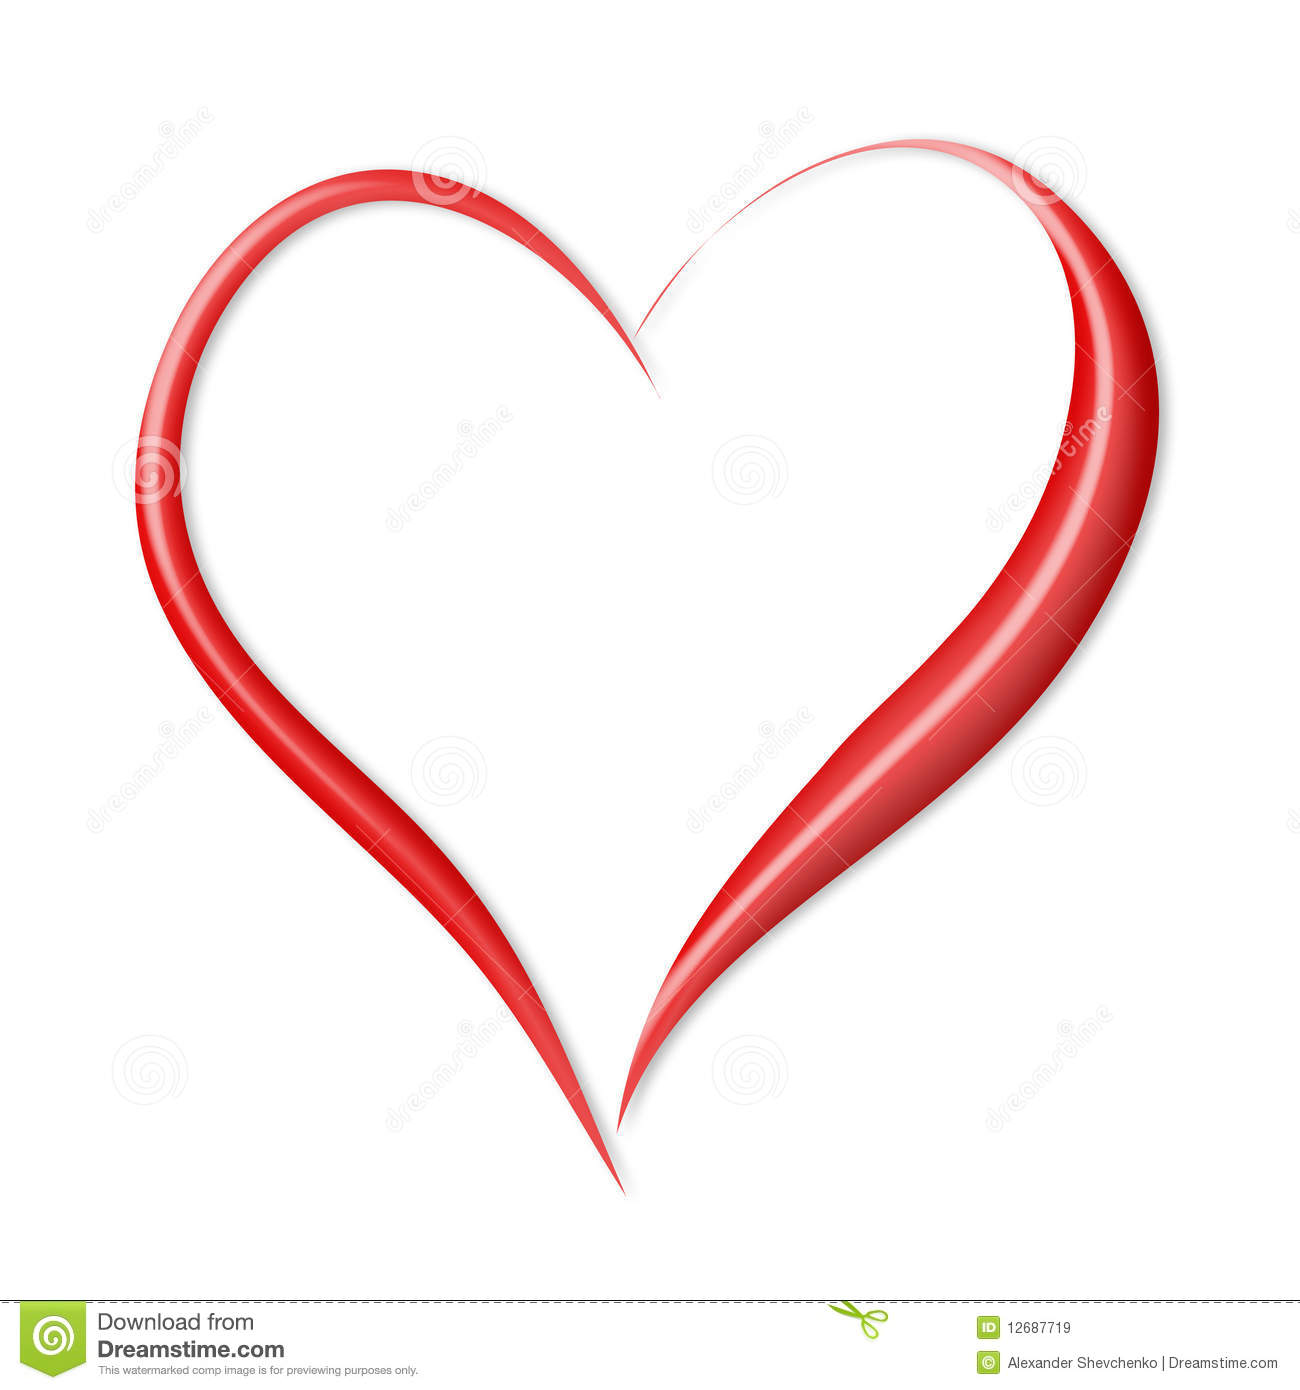 Valentine Heart Images Valentine's heart isolated on